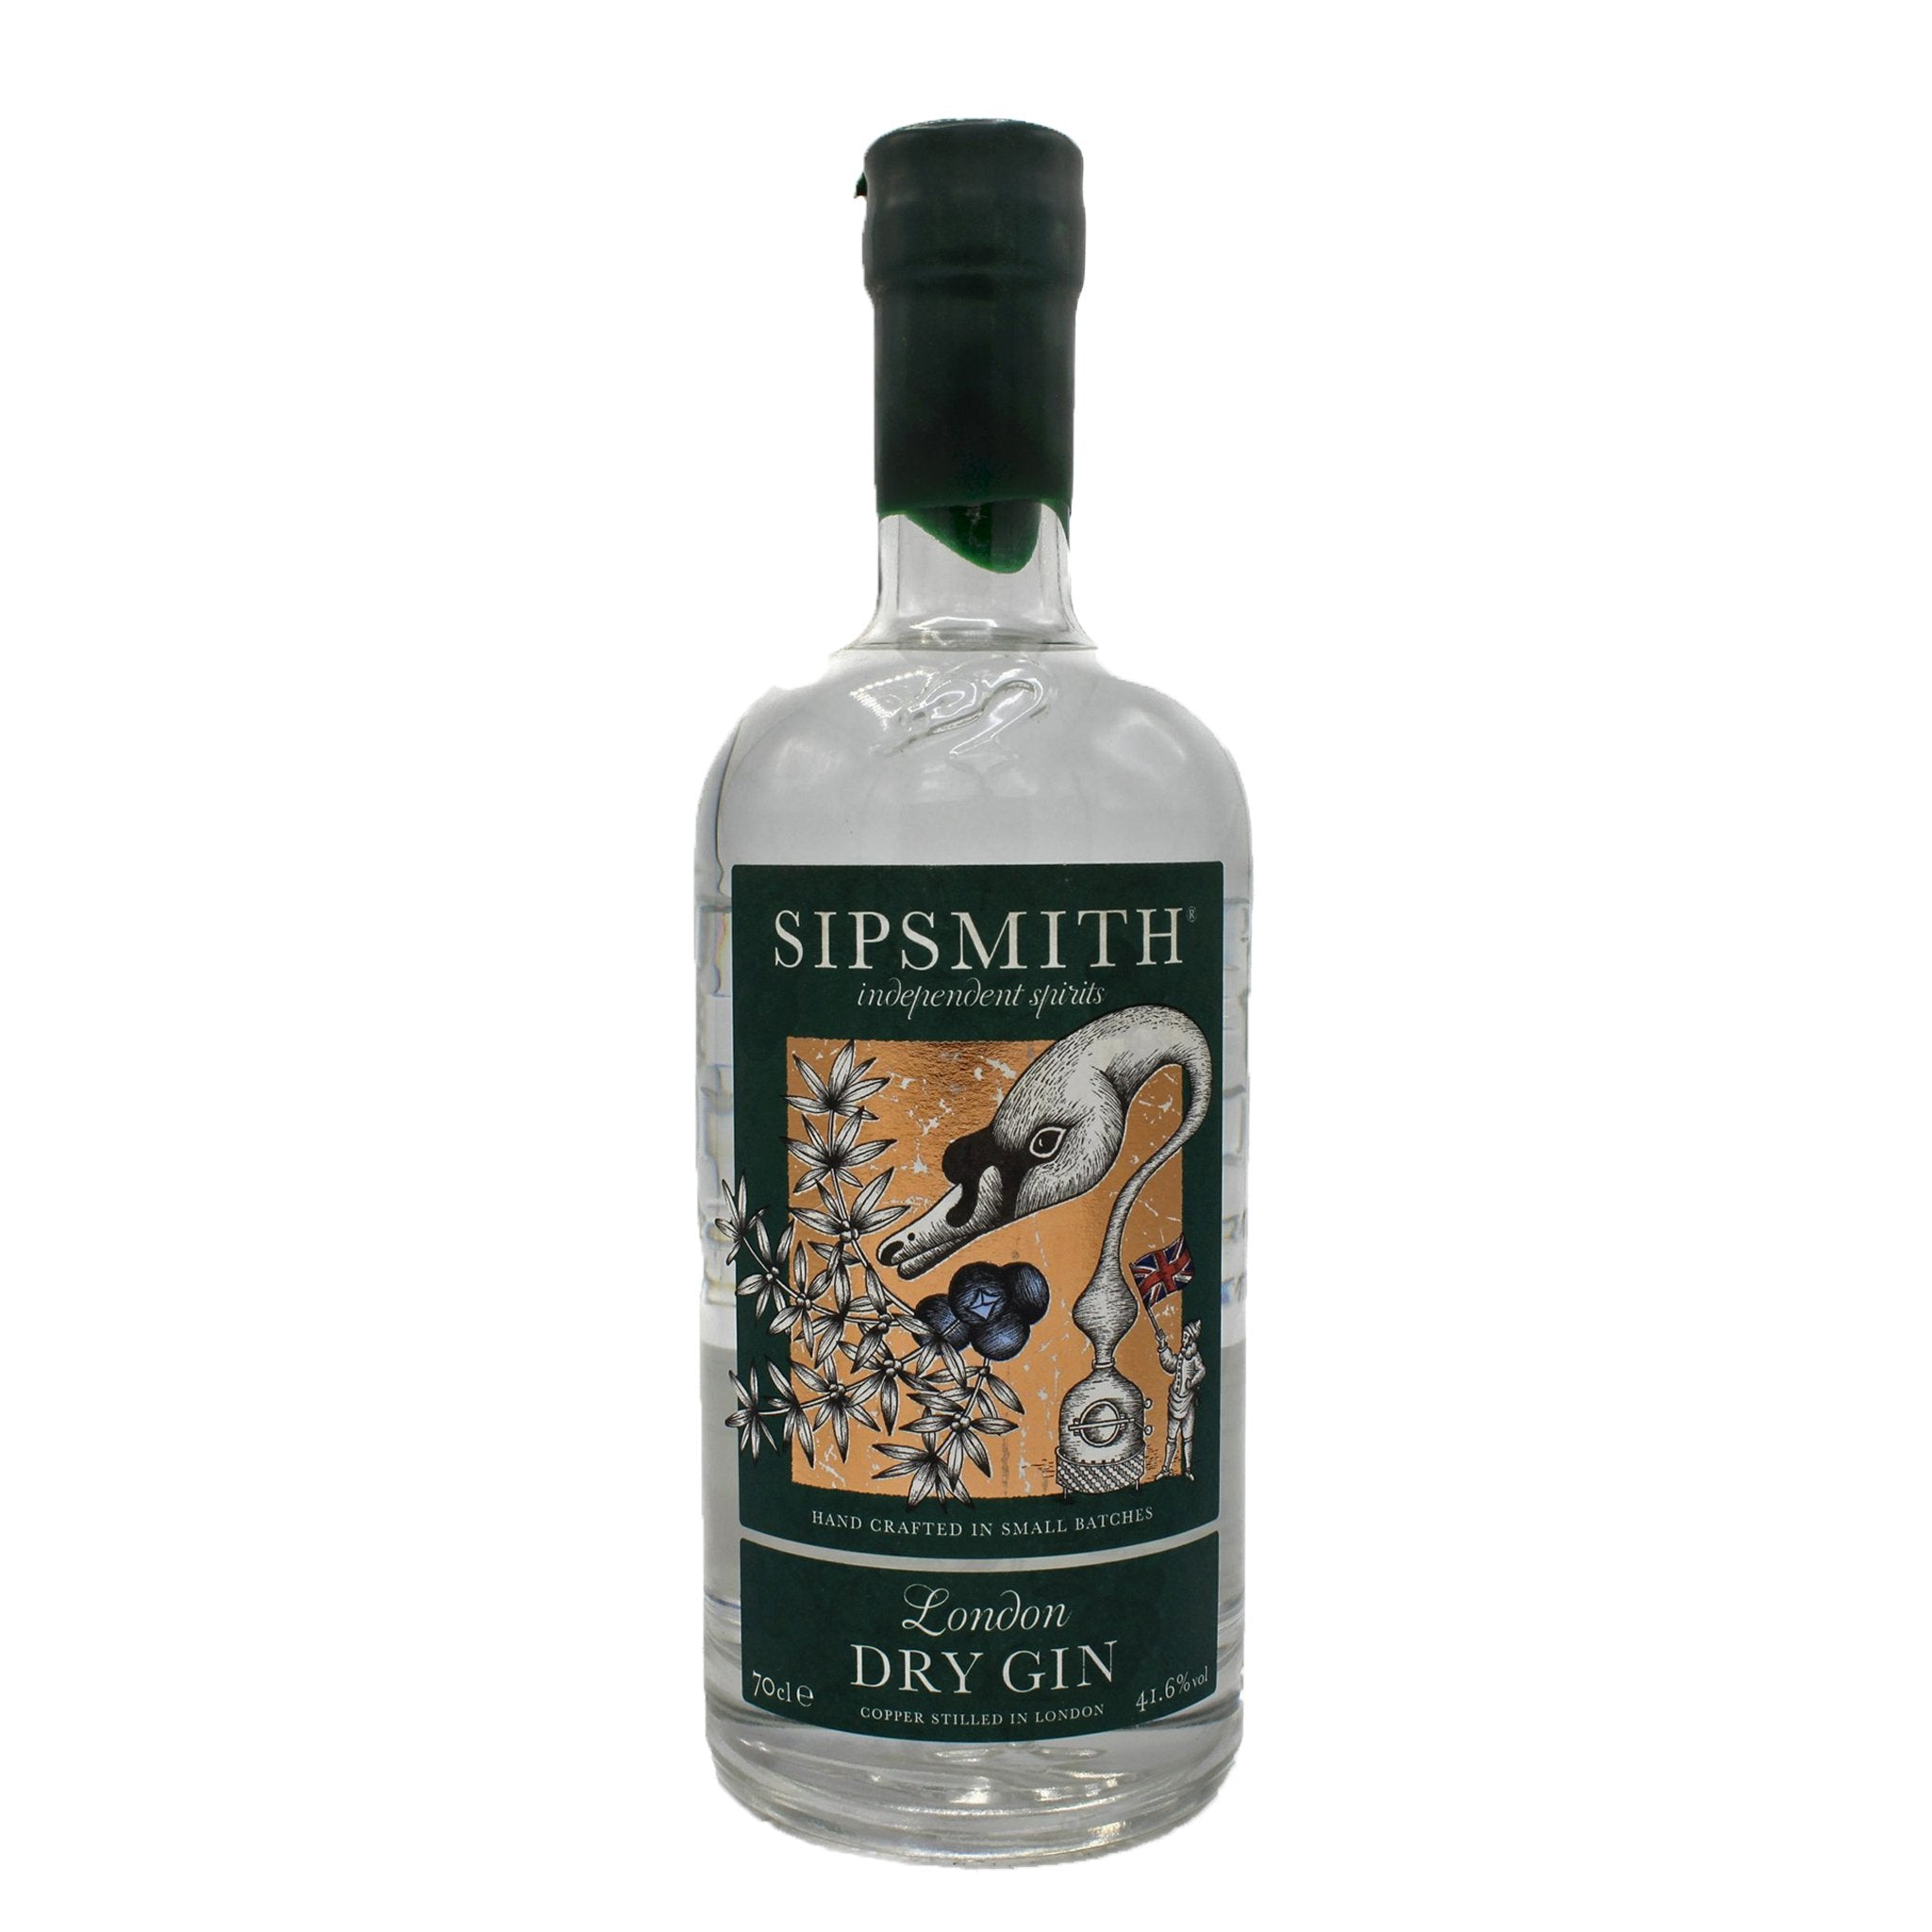 Sipsmith London Dry Gin 70cl, Gin - Image 1